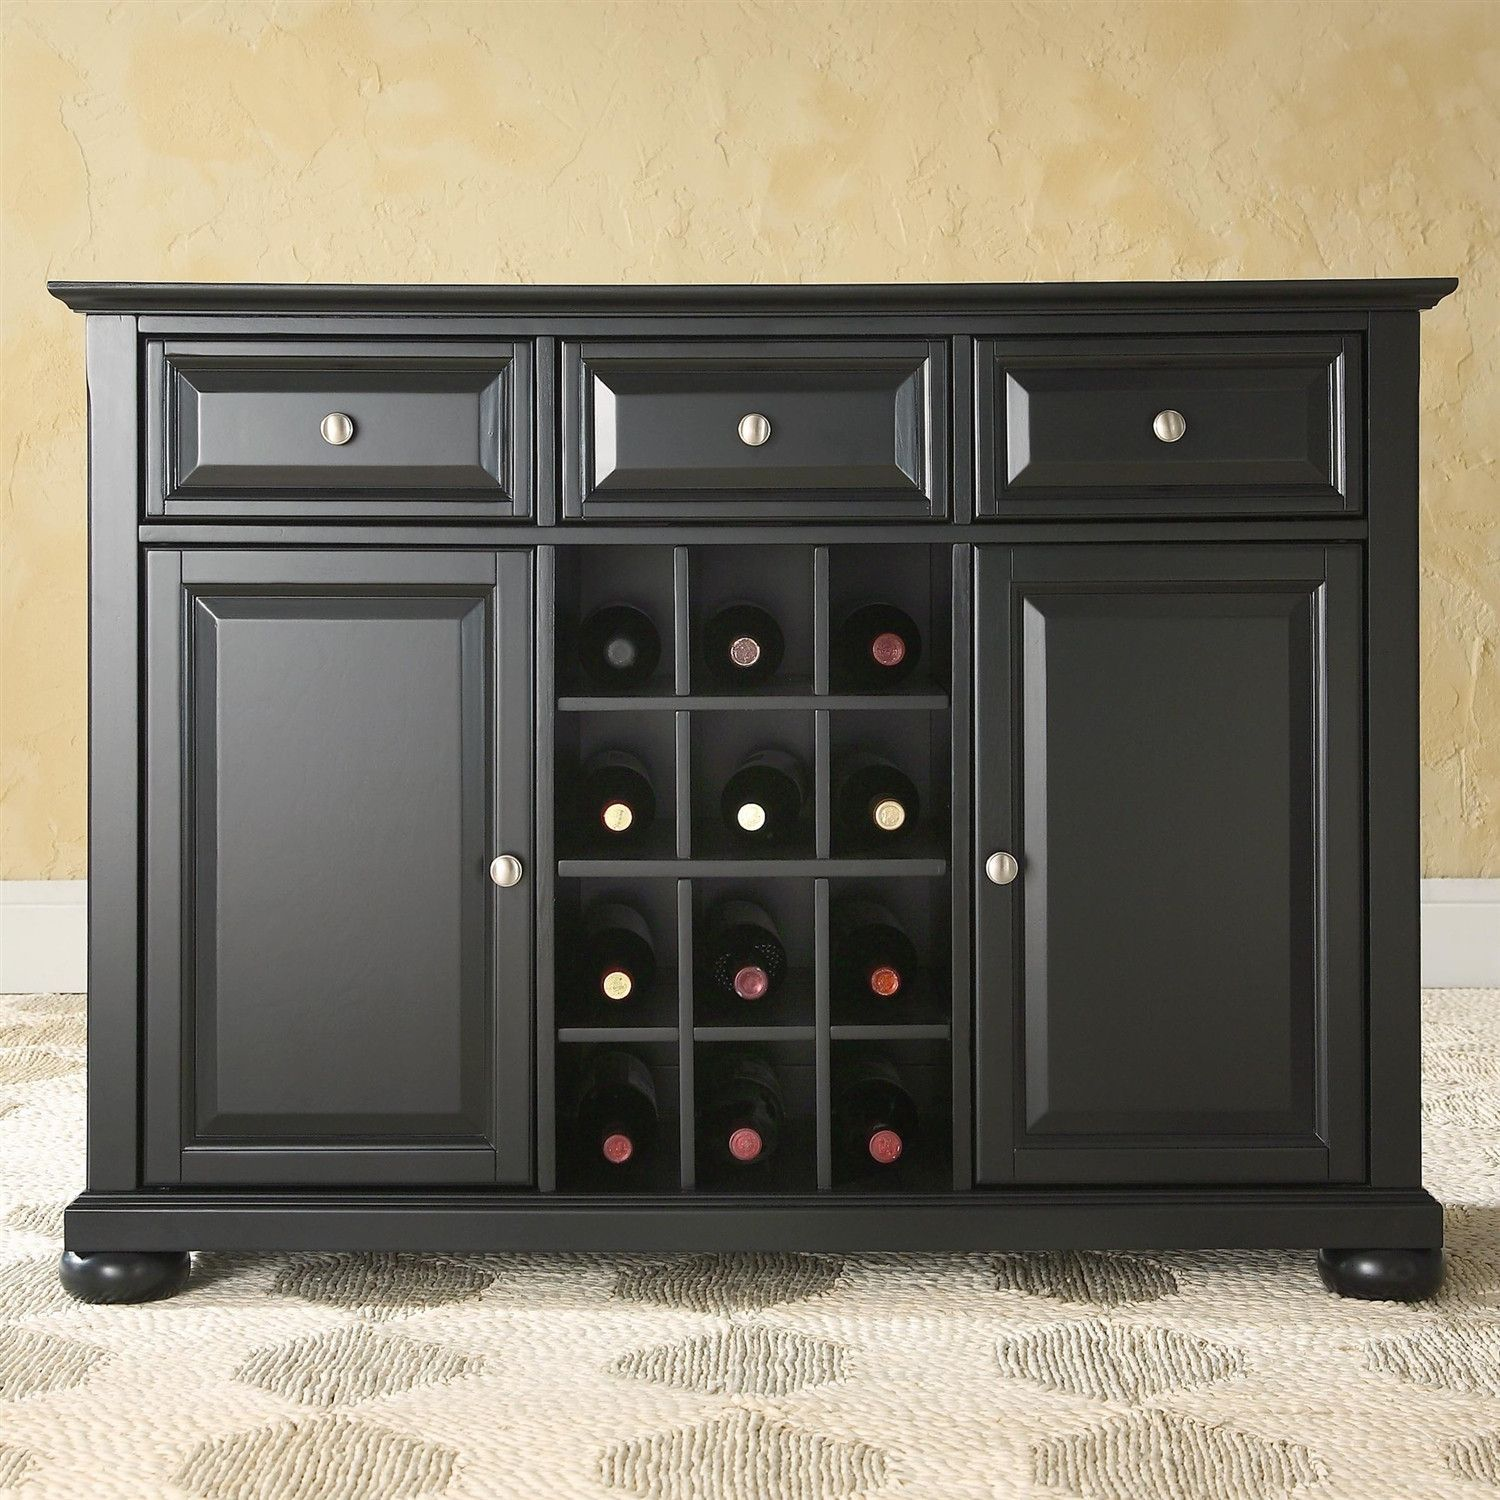 Küche Buffett Black Wood Sideboard Buffet Server Table Dining Storage Cabinet